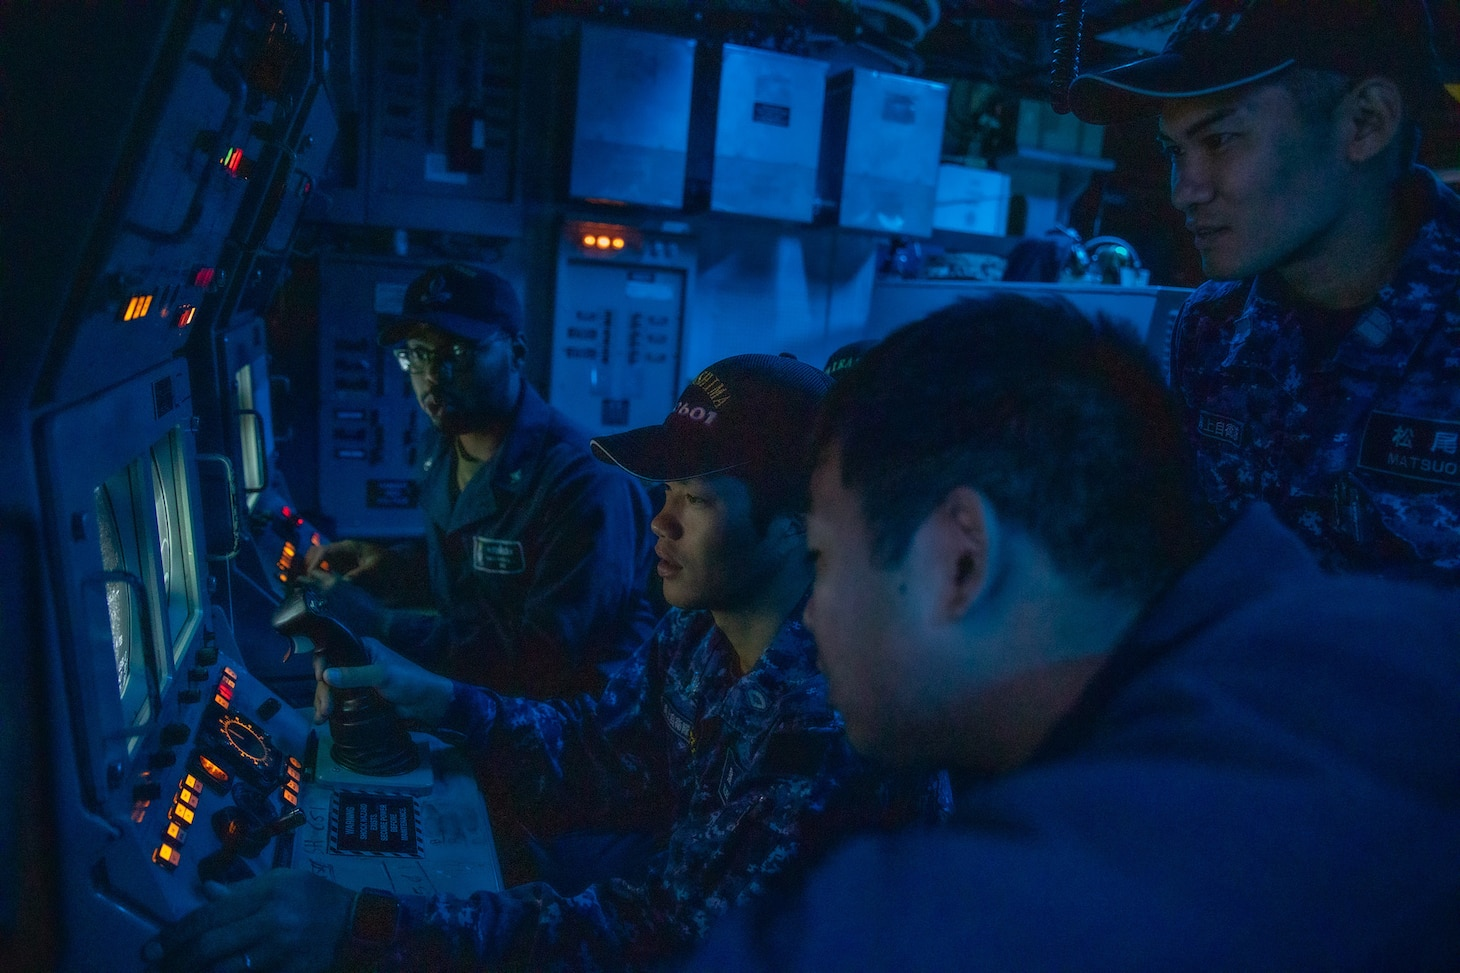 191101-N-AD347-0141 SASEBO, Japan (November 01, 2019) Japanese Maritime Self-Defense Force sailors from Hirashima-class Mine Countermeasures ship, Hirashima MSC 601 use a simulator program to practice driving a mine neutralization vehicle in order to hone their skills and mine hunting aboard Avenger-class mine countermeasures ship USS Pioneer (MCM 9). Pioneer, part of Mine Countermeasures Squadron 7, is operating in the 7th Fleet area of operations to enhance interoperability with partners and serve as a ready-response platform for contingency operations.